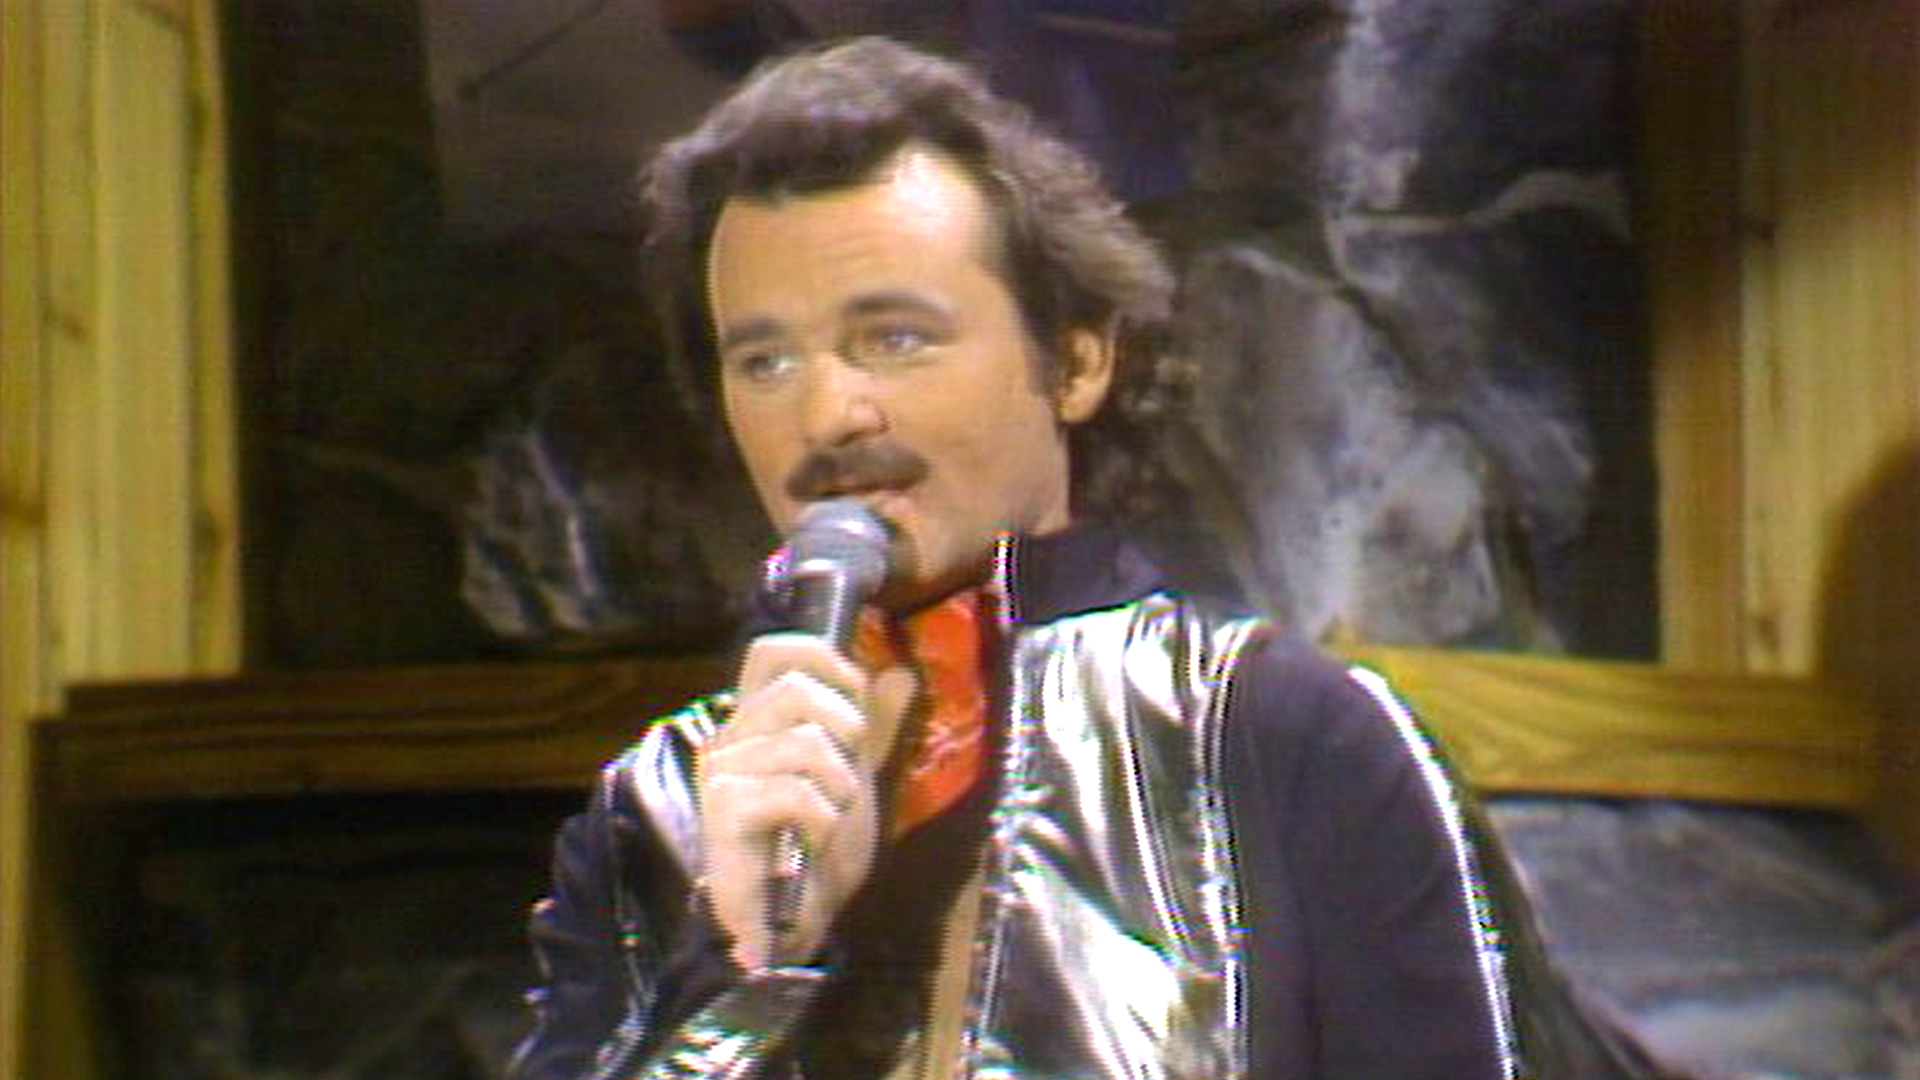 watch saturday night live highlight nick the lounge singer sings star wars theme nbccom - Saturday Night Live Christmas Song